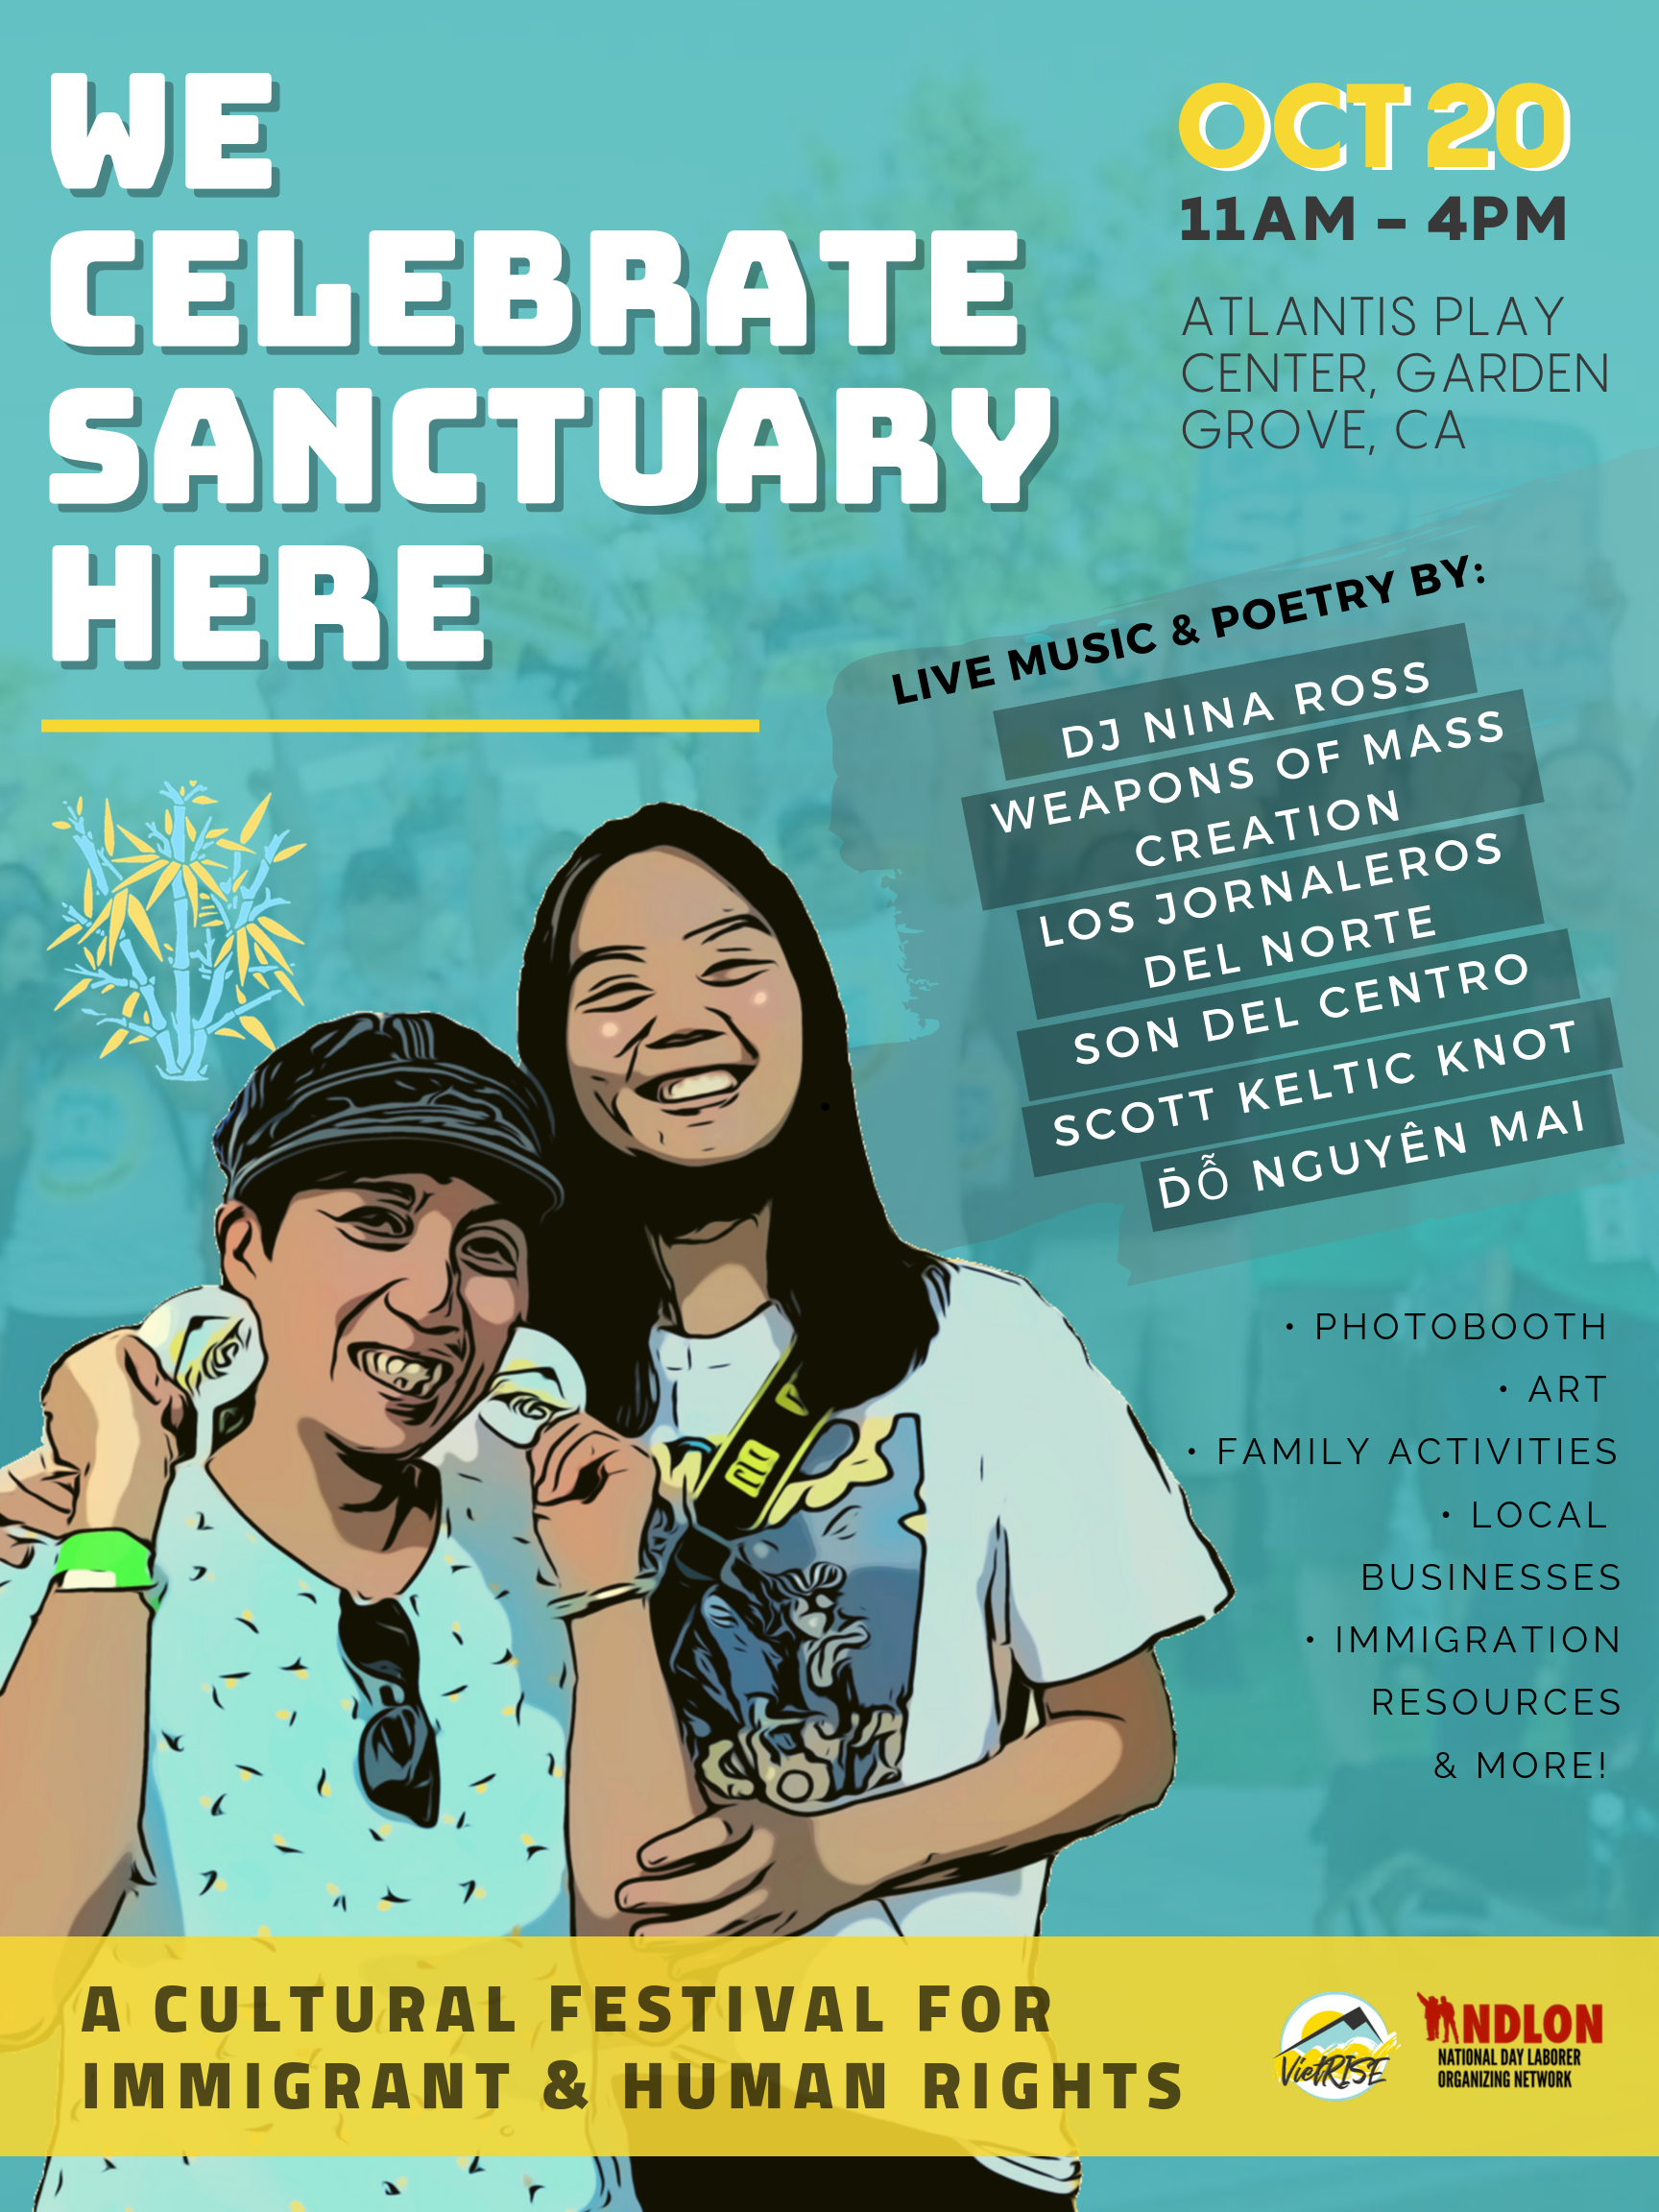 Press Release: Cultural Festival in Little Saigon to Celebrate Sanctuary for Immigrants and Refugees